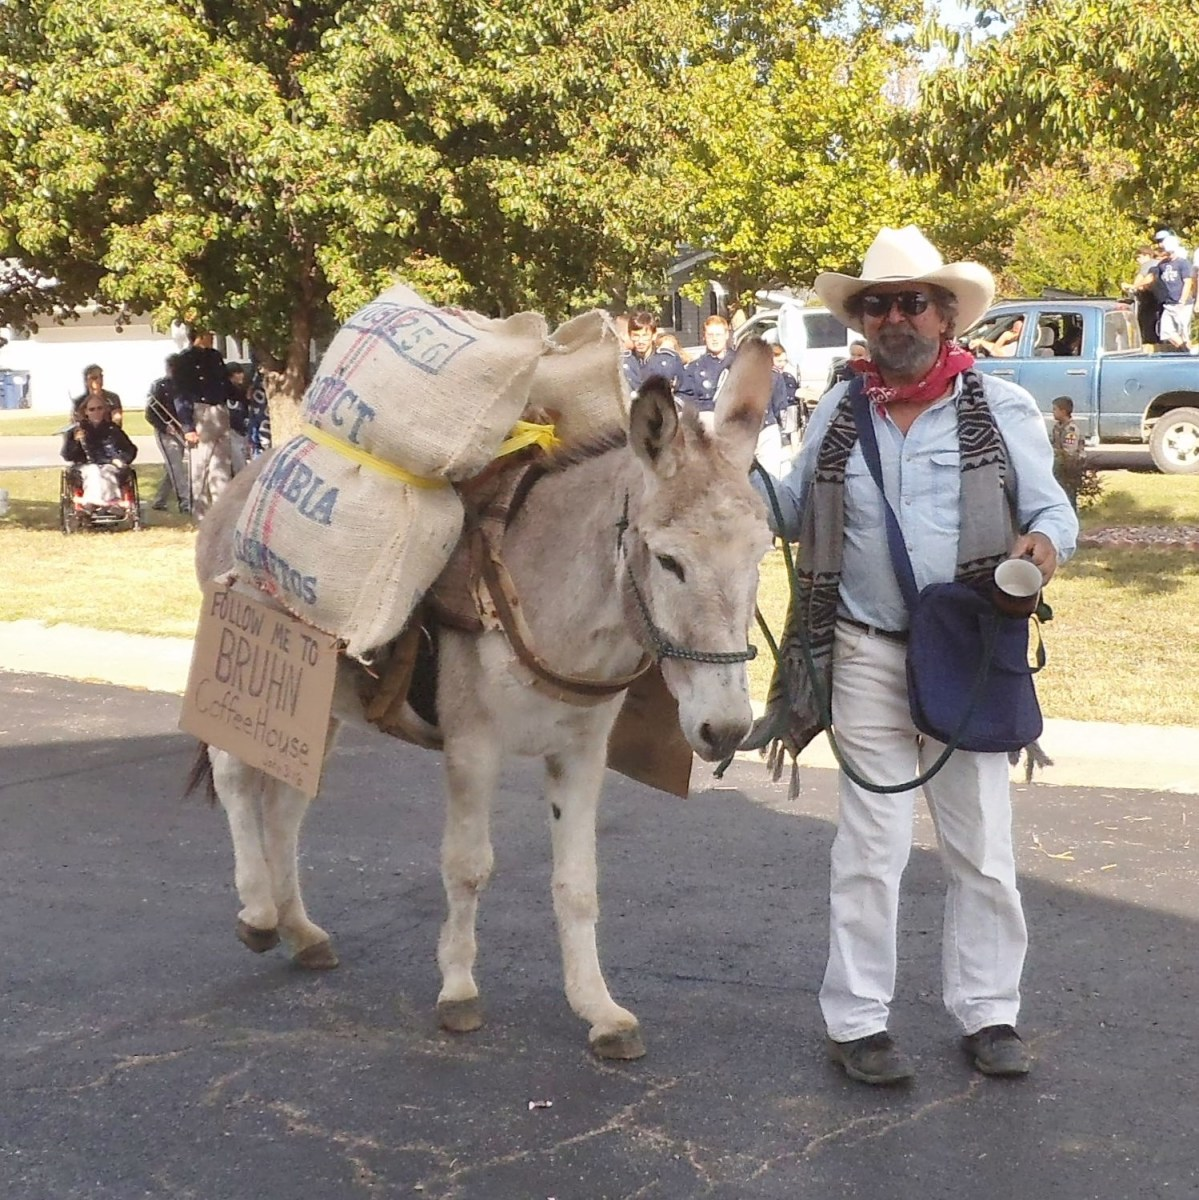 Juan Valdez with his burro and sacks of coffee